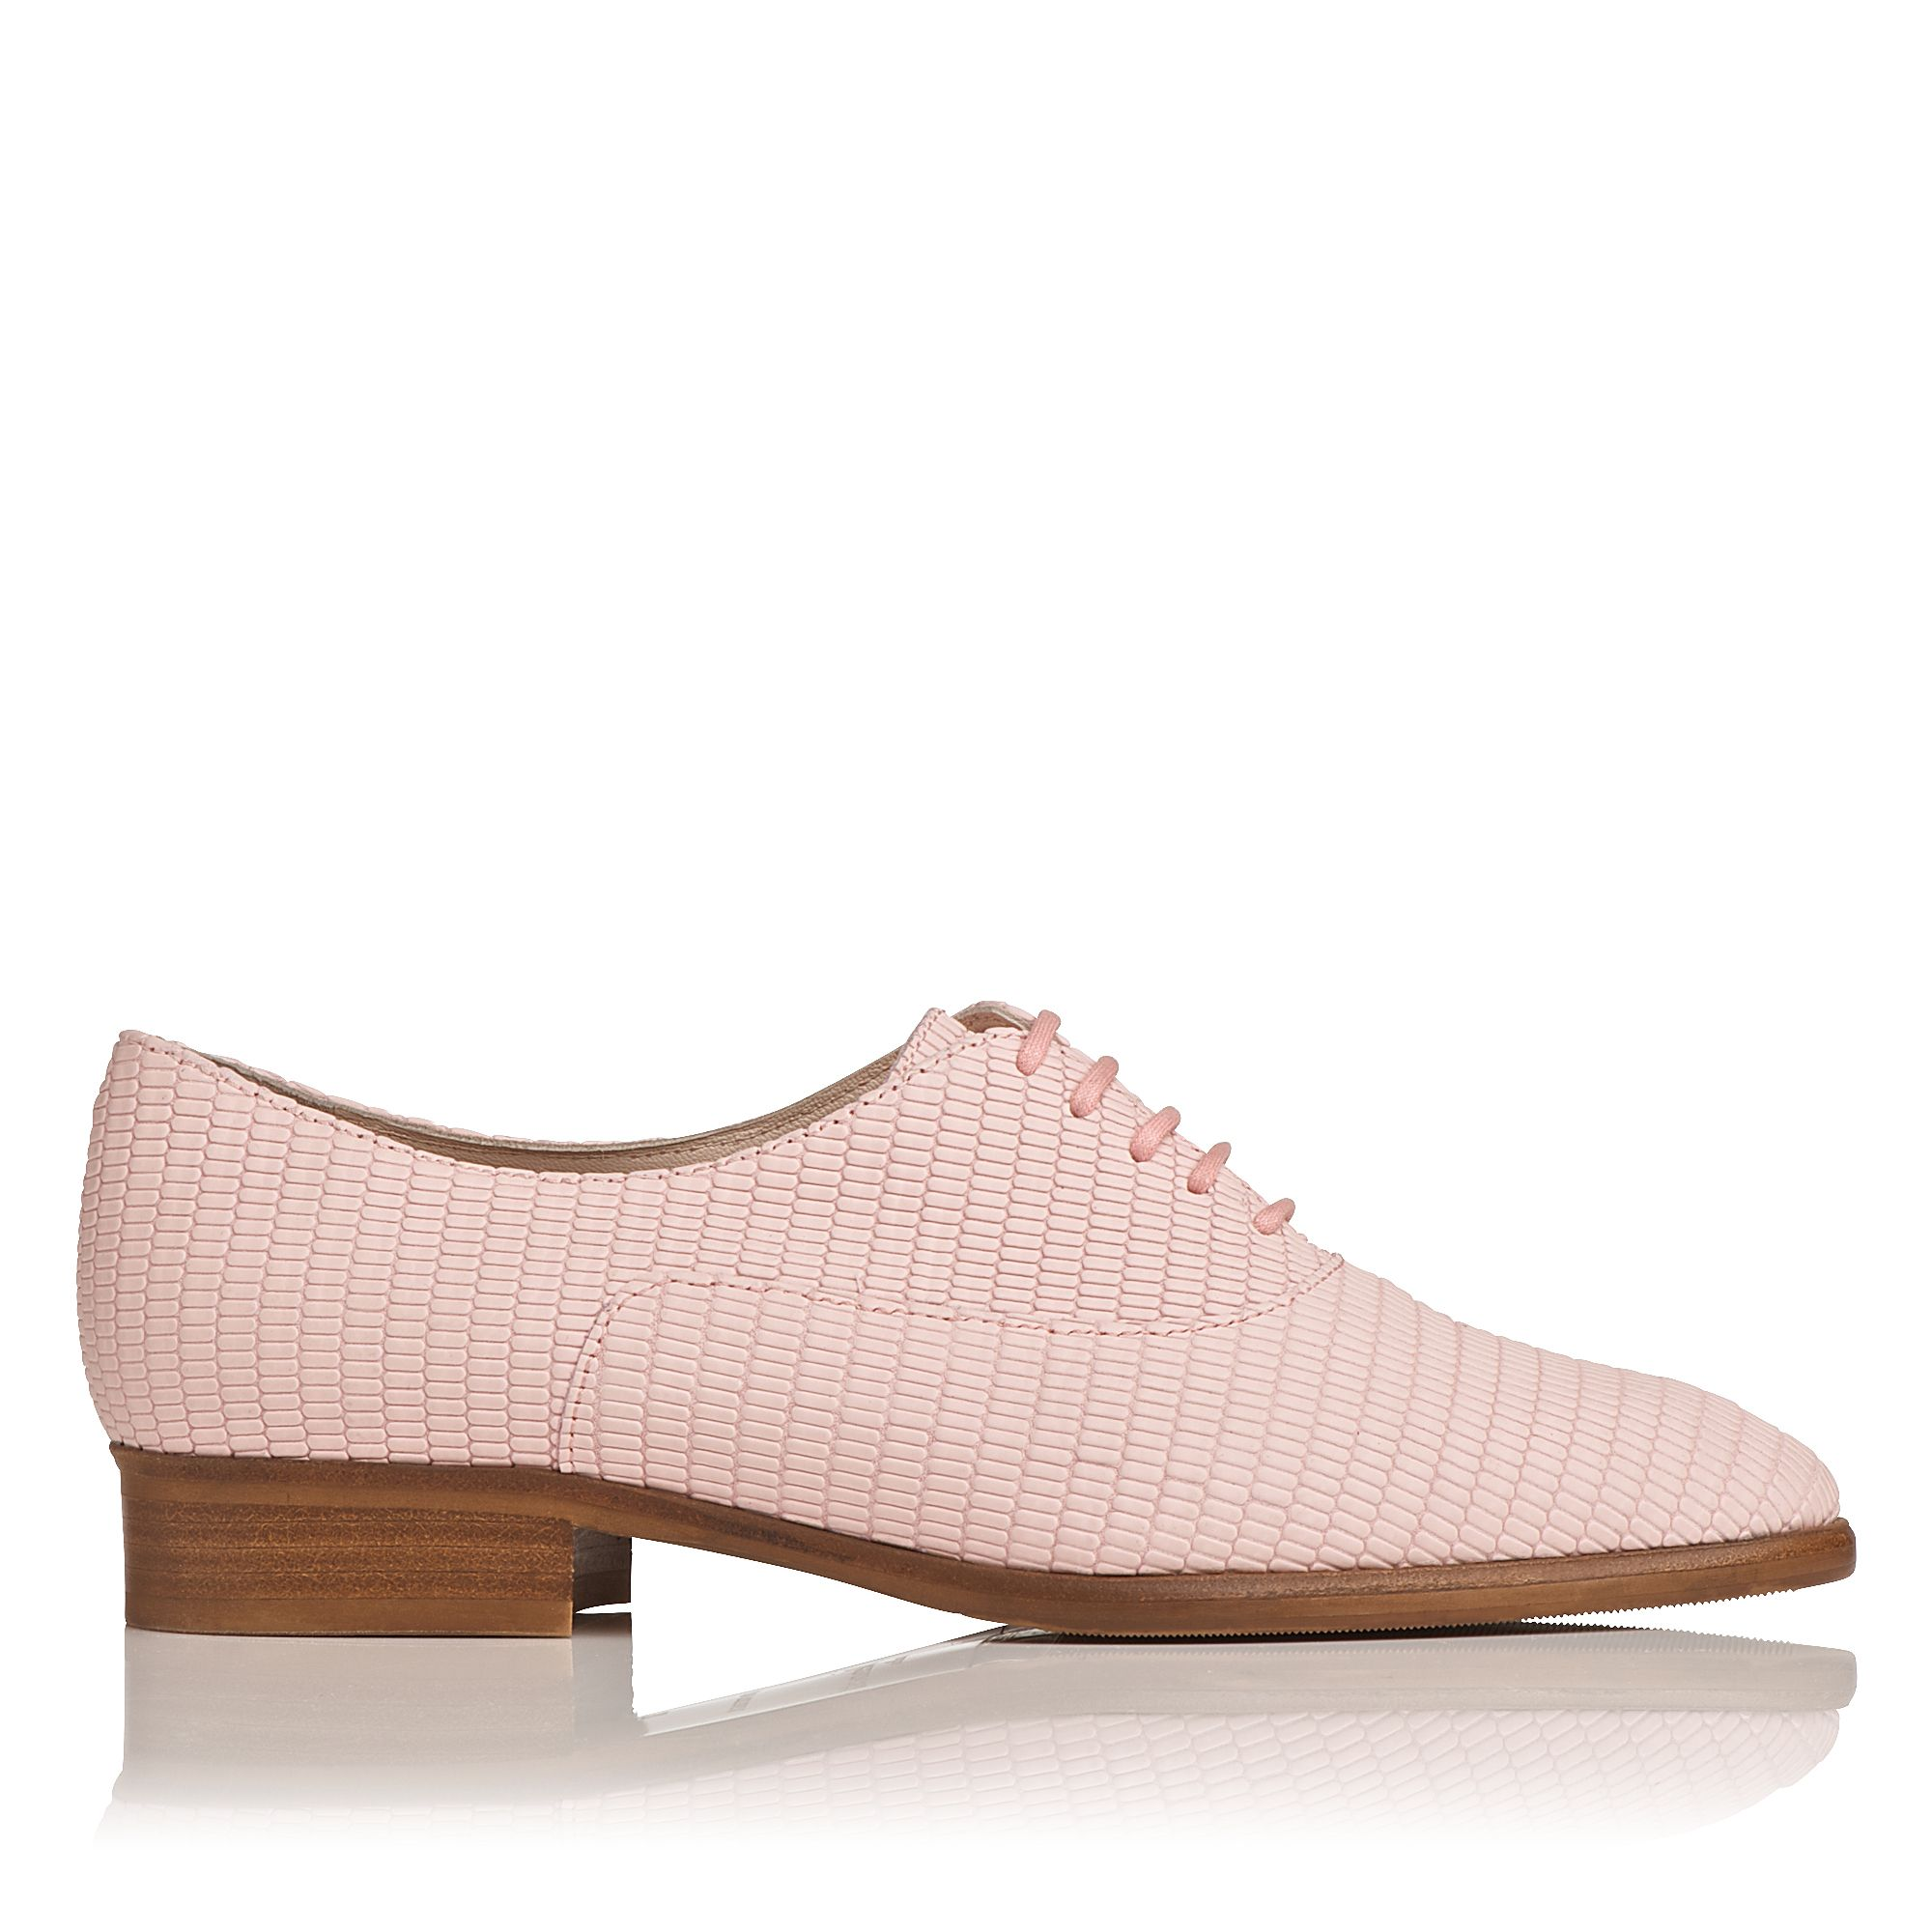 Elga lace-up brogues